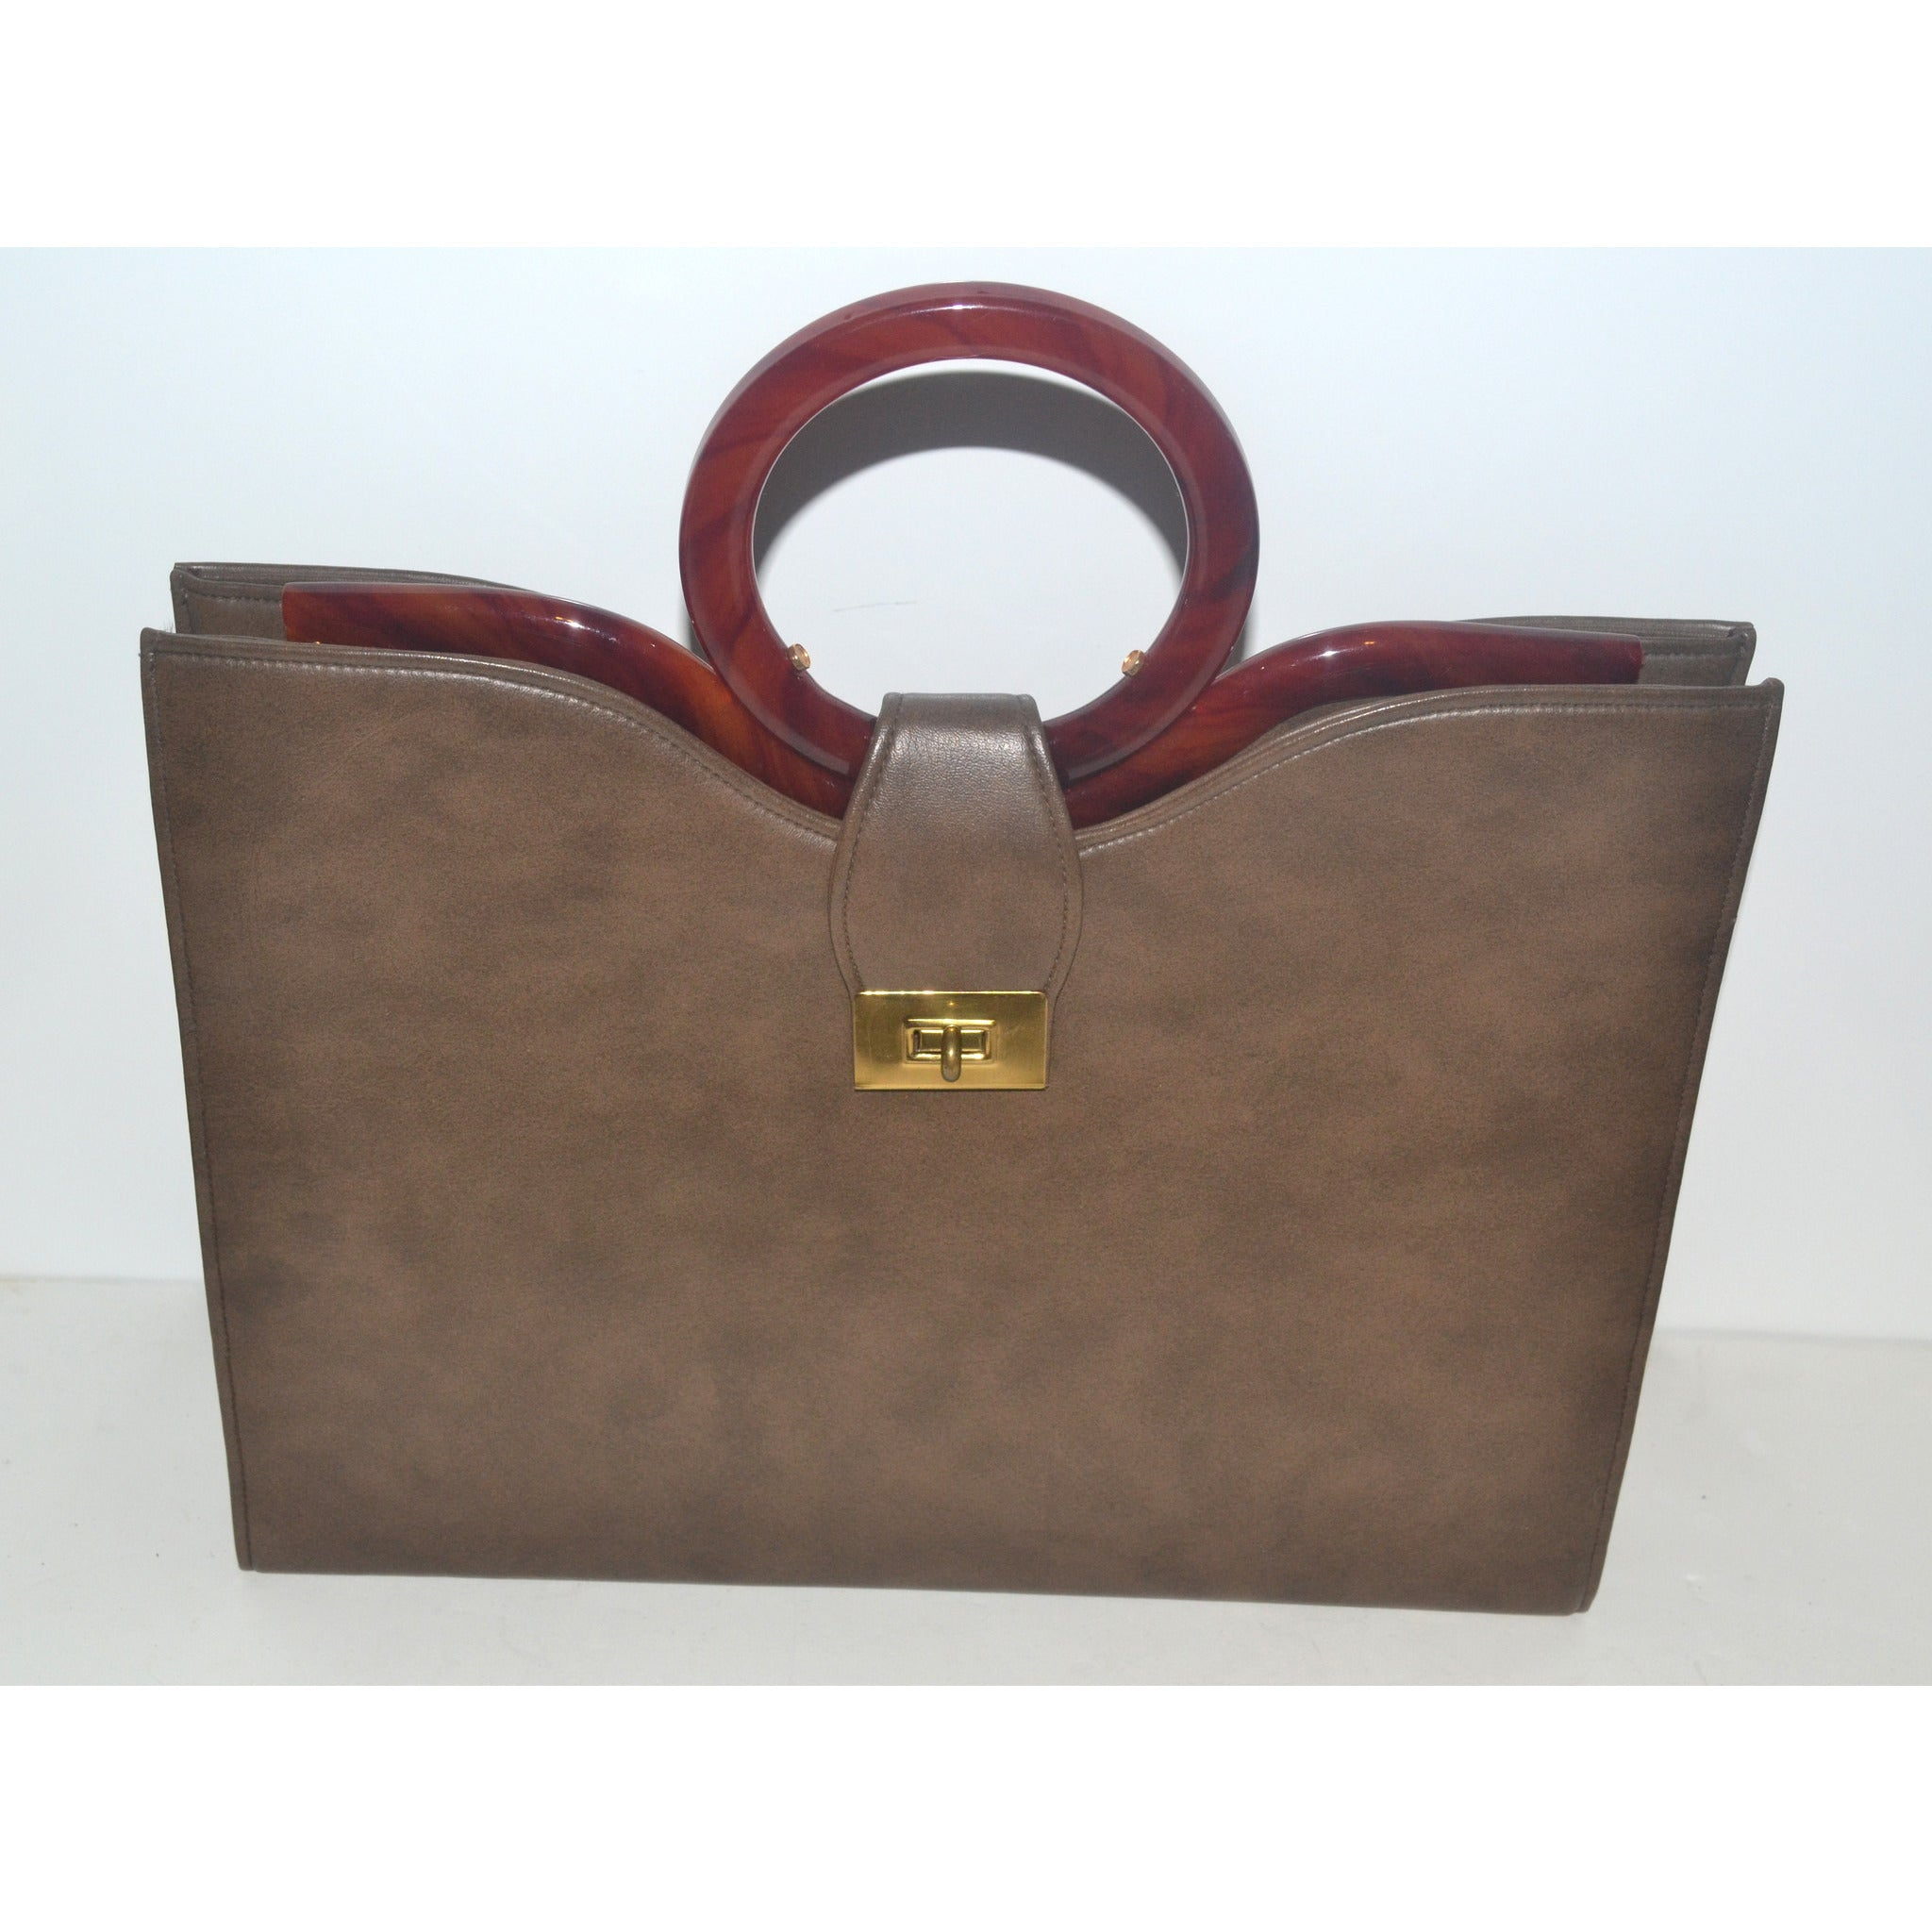 Vintage Structured Handbag by Lou Taylor